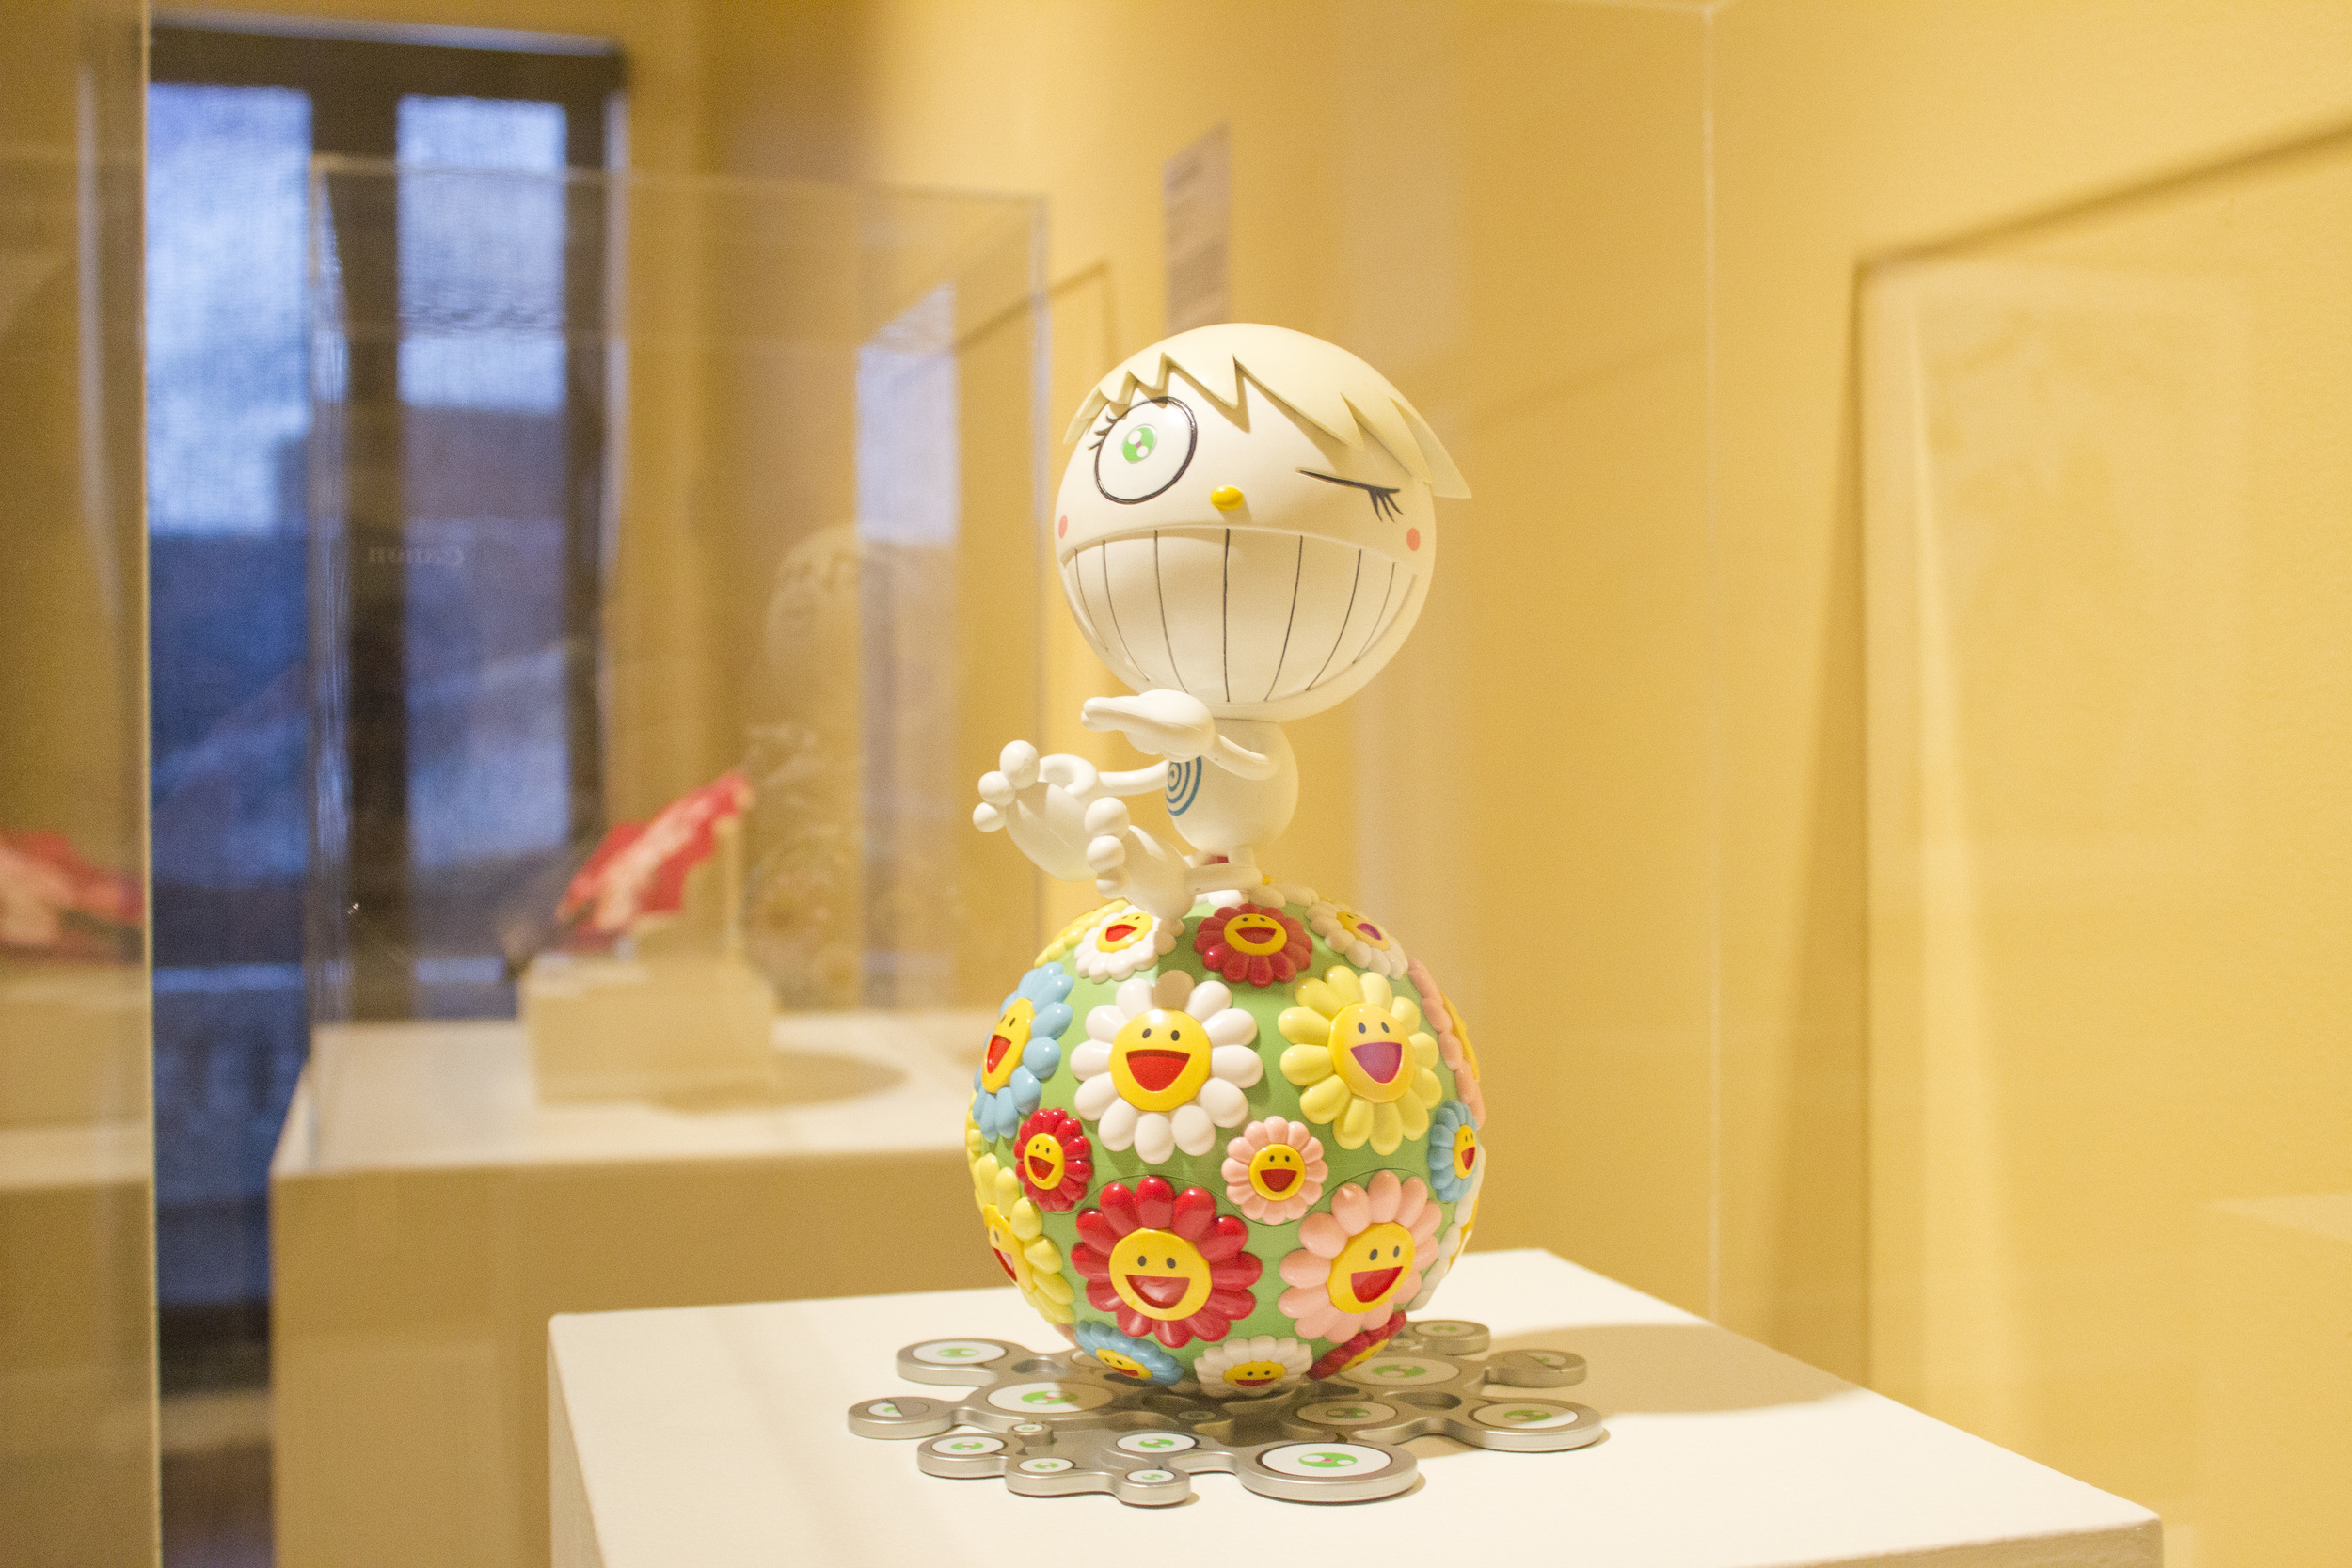 A case of a figure that is smiling and winking made from two balls. The lower section of the figure is covered in smiling flowers.